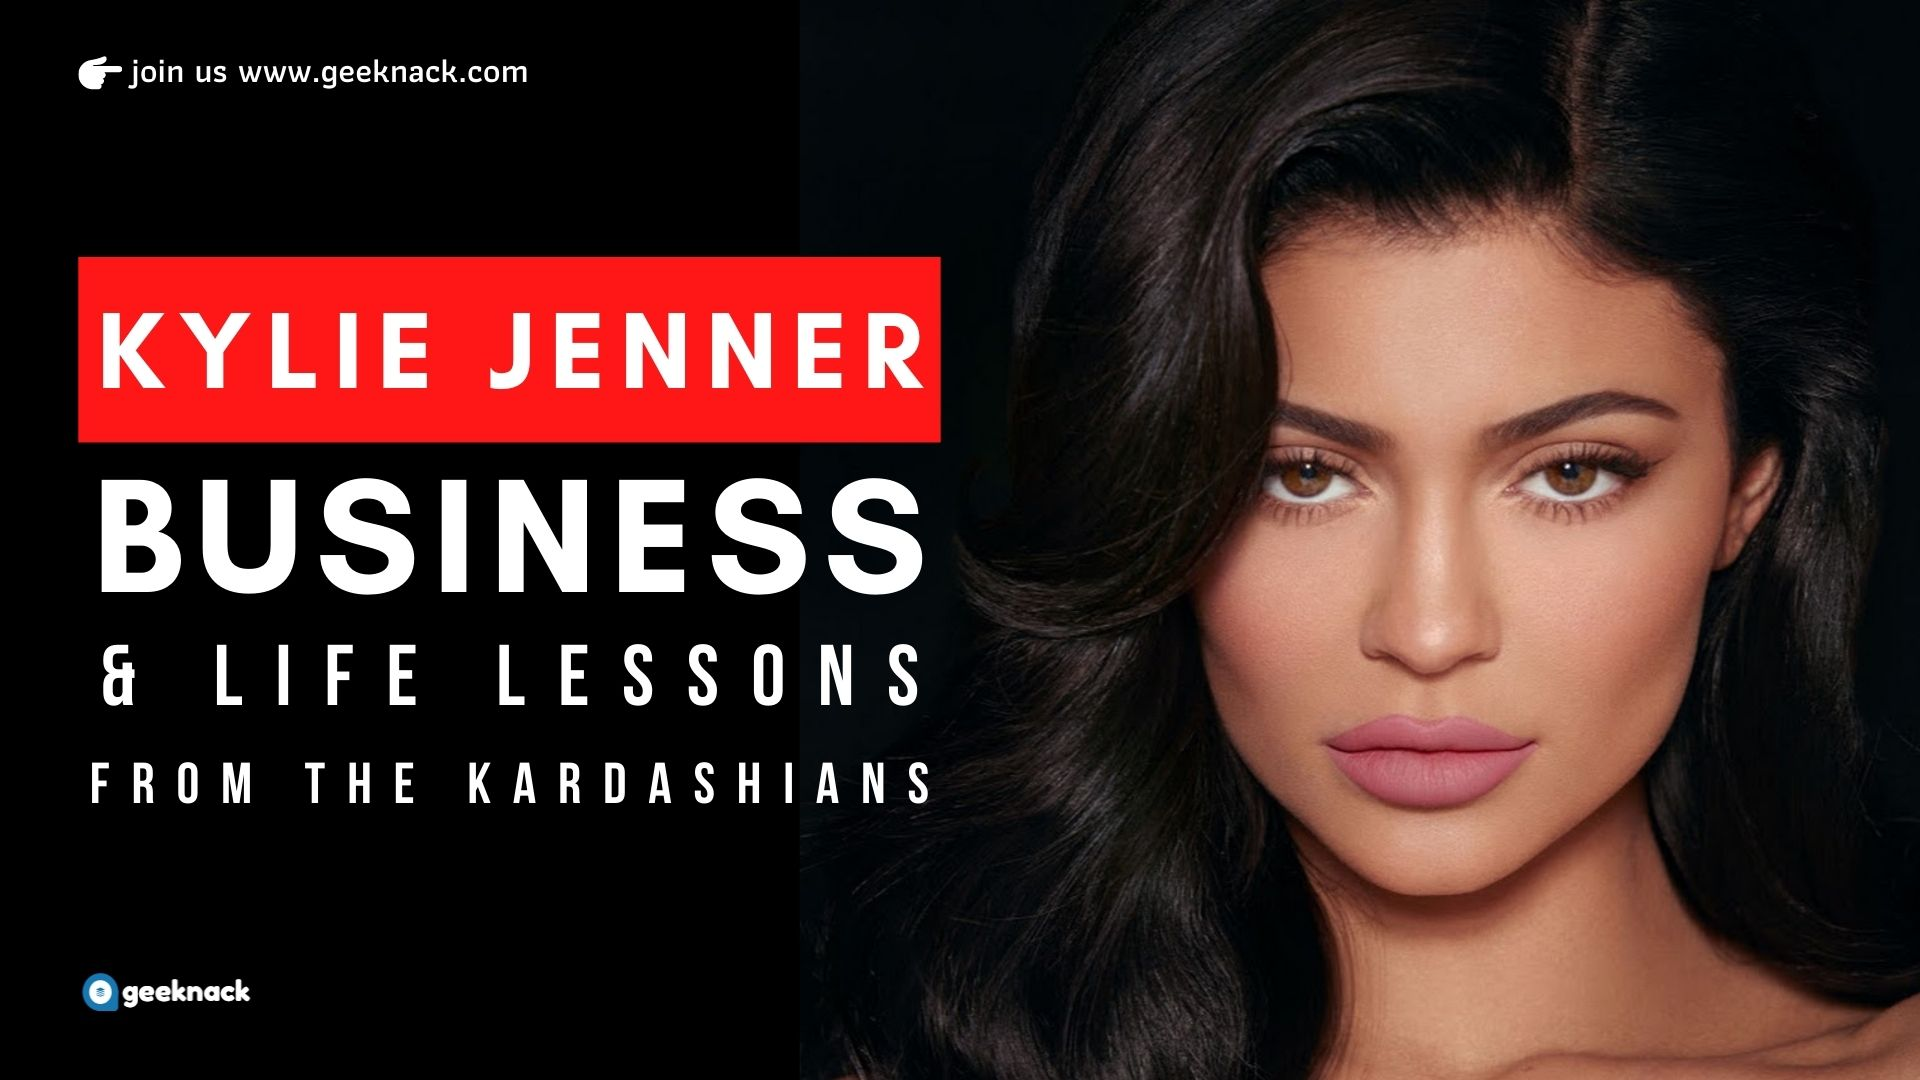 Kylie Jenner Business & Life Lessons From The Kardashians